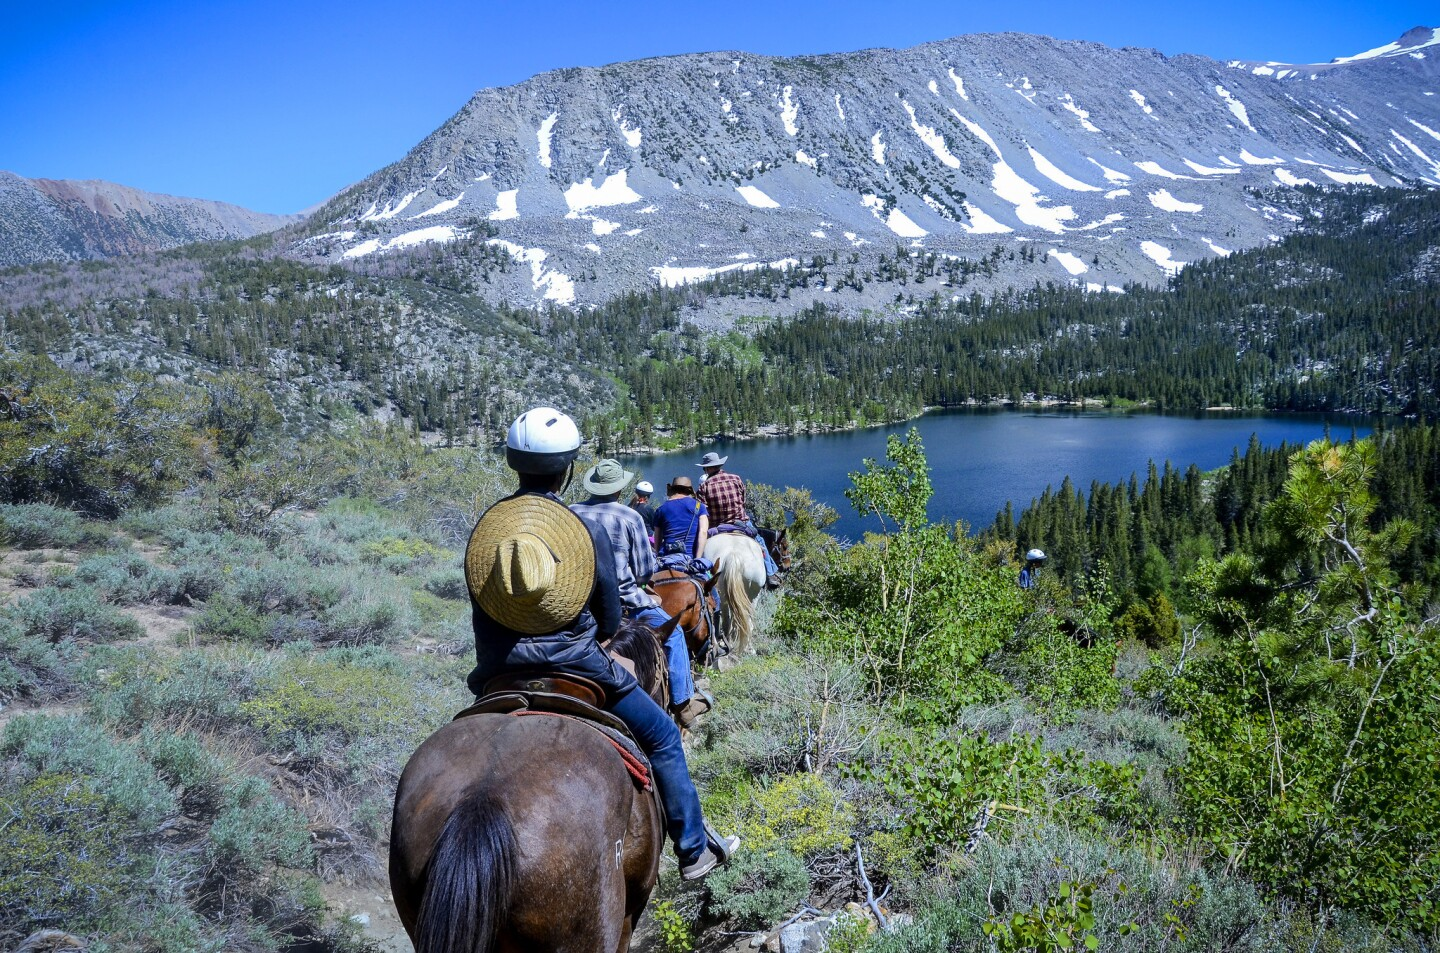 Guests and packers from Rock Creek Pack Station start their ride back to the station from Davis Lake.